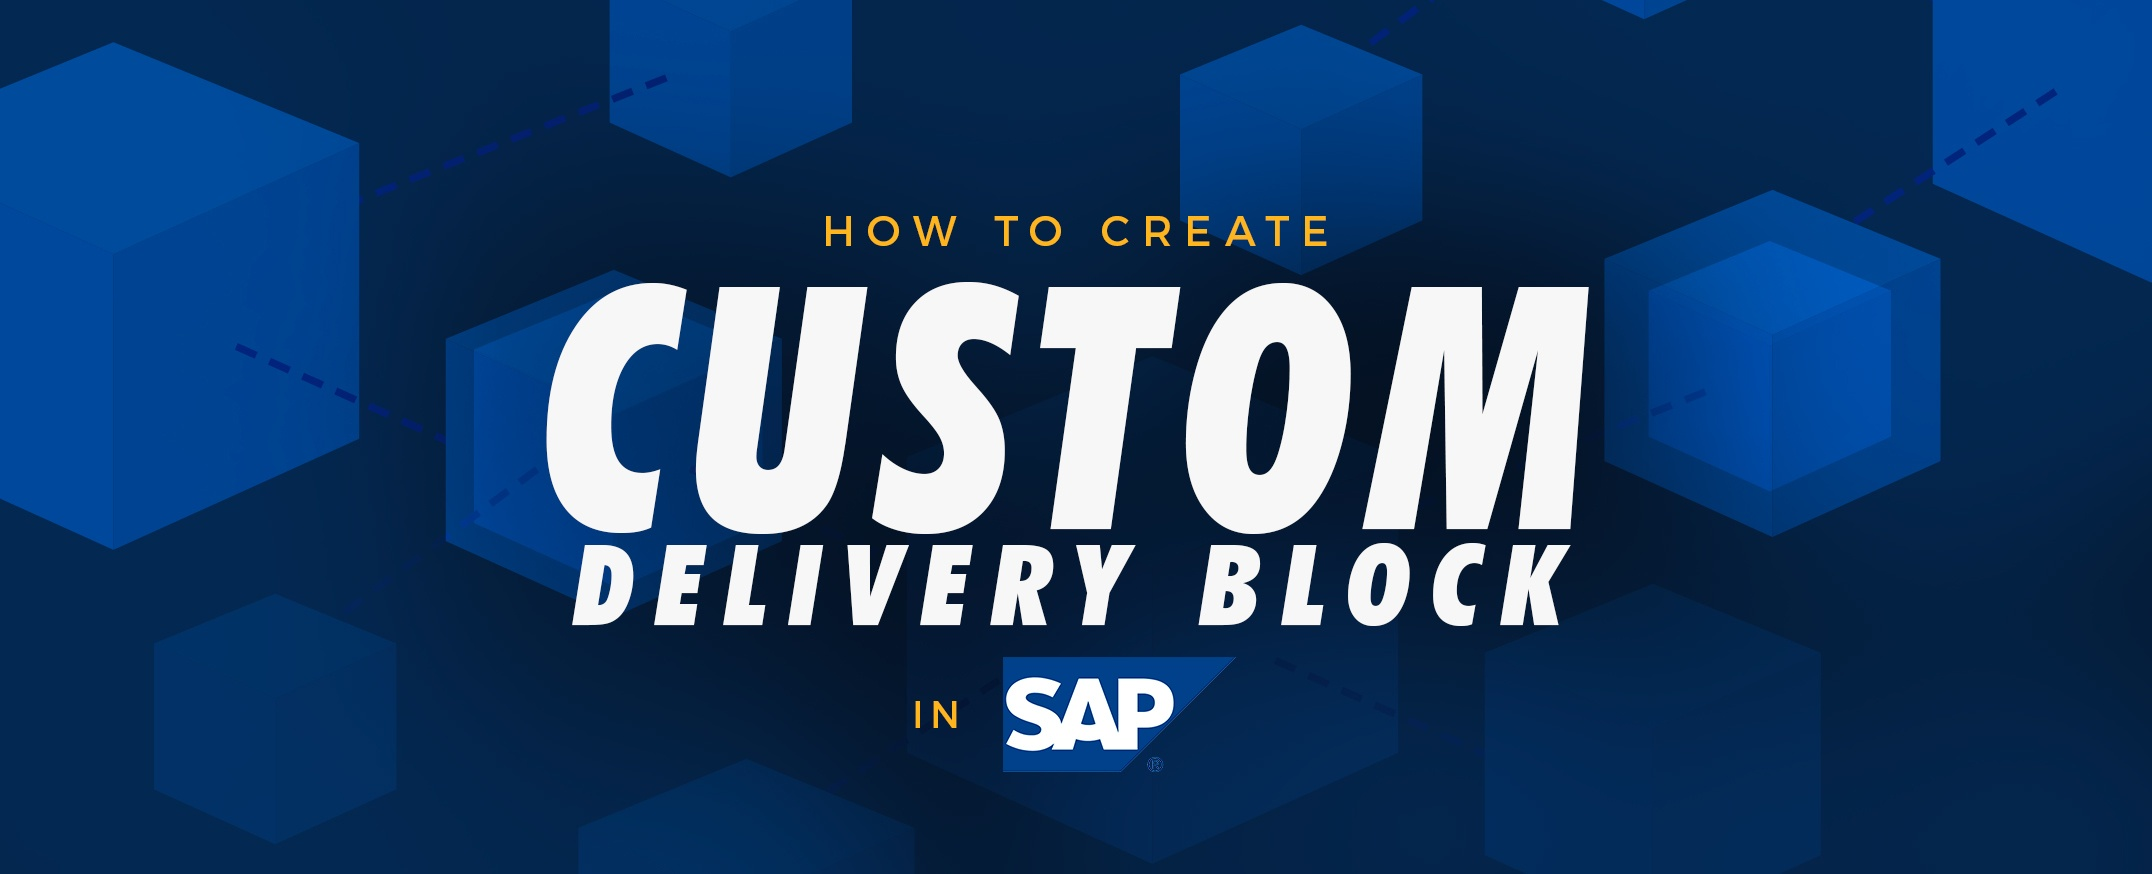 How-To-Create-Custom-Delivery-Block-In-SAP-ERP